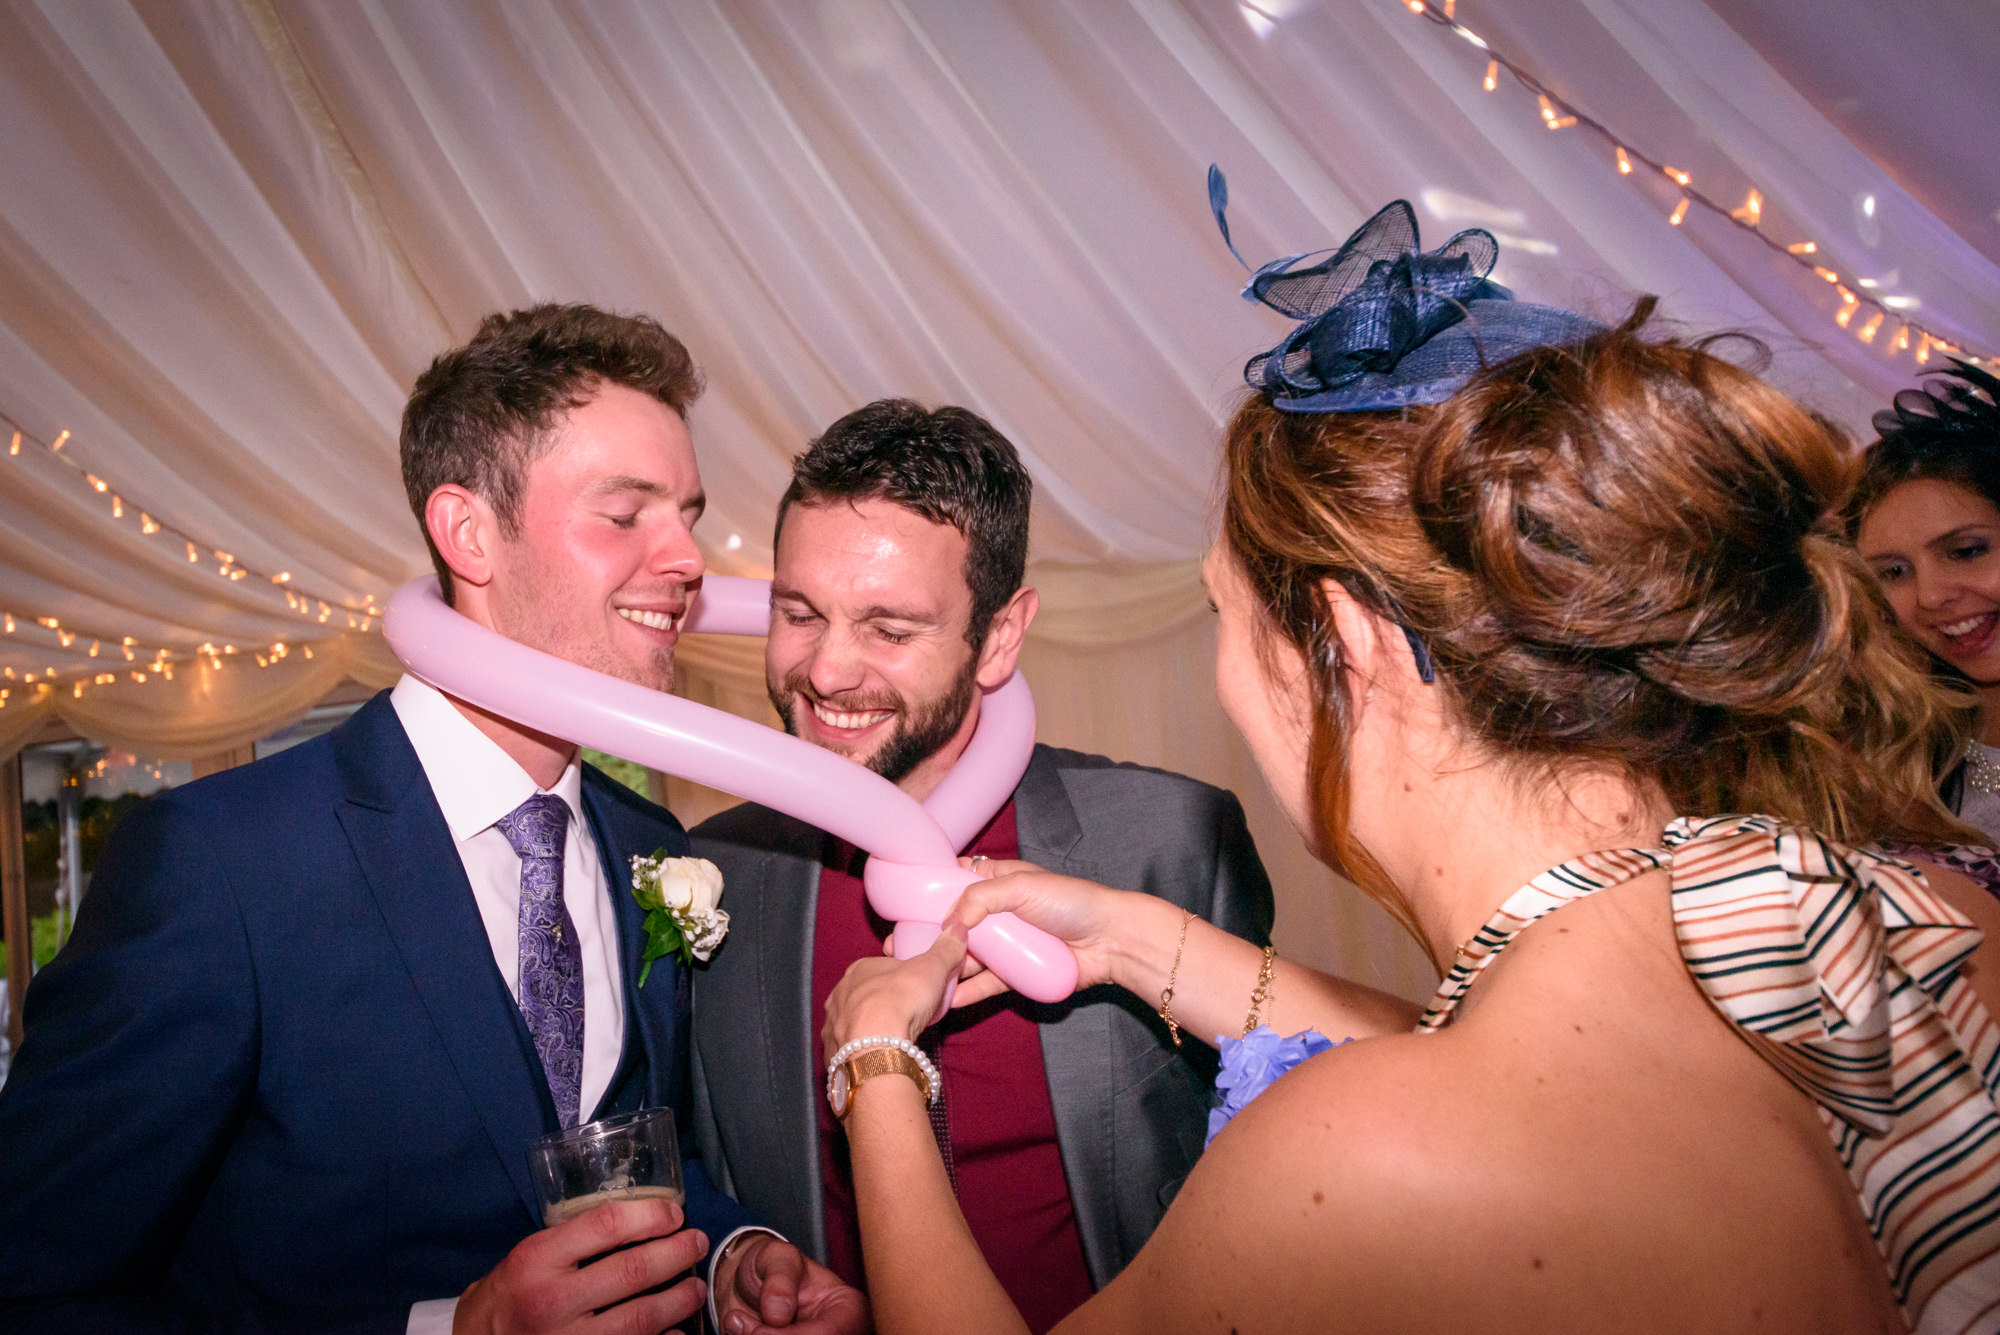 Groom and a guest being tied together with a balloon